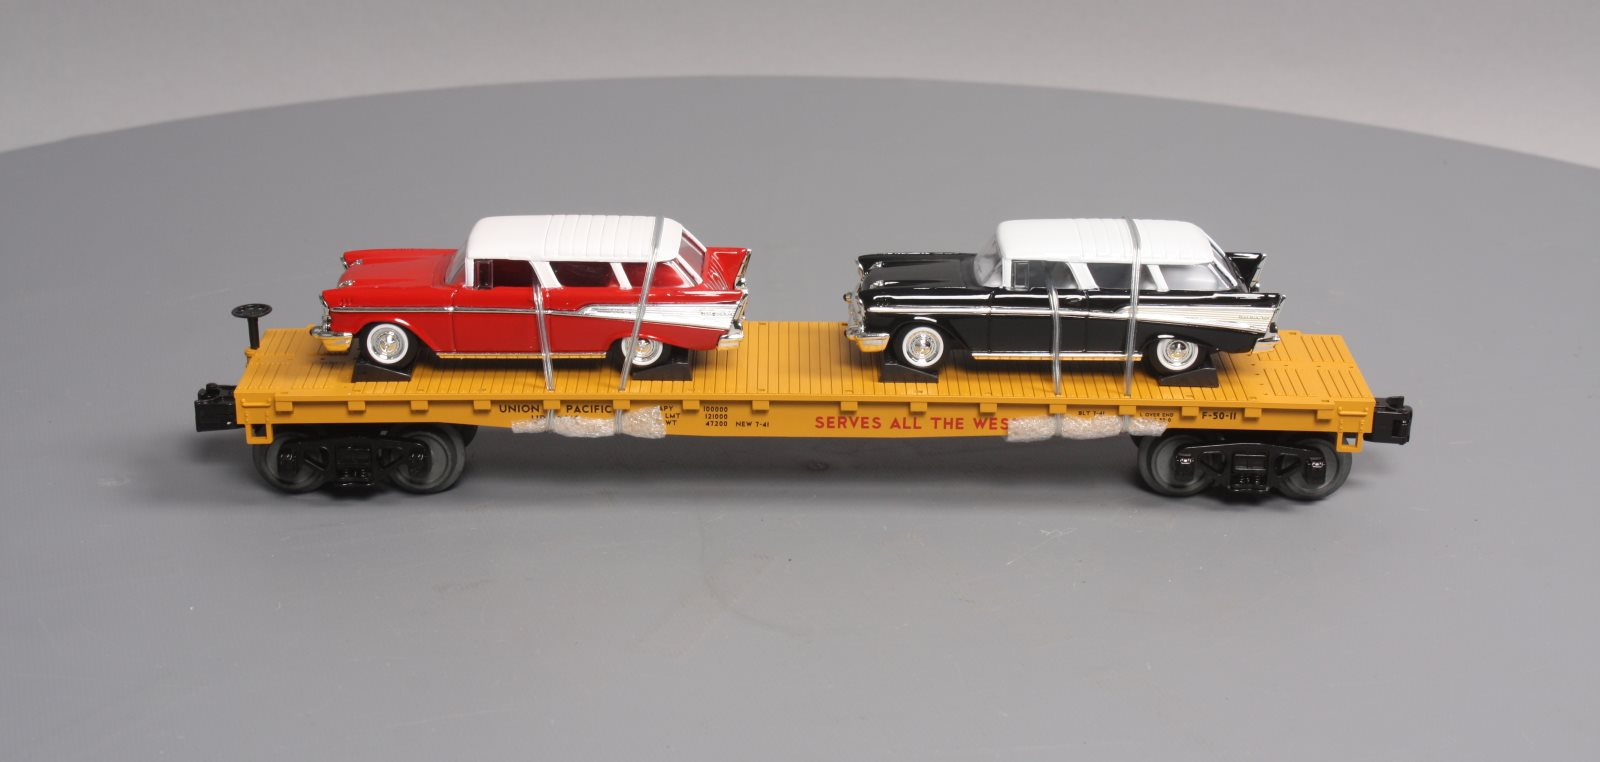 hight resolution of mth 30 76639 o union pacific flatcar with 2 57 chevy nomad ln